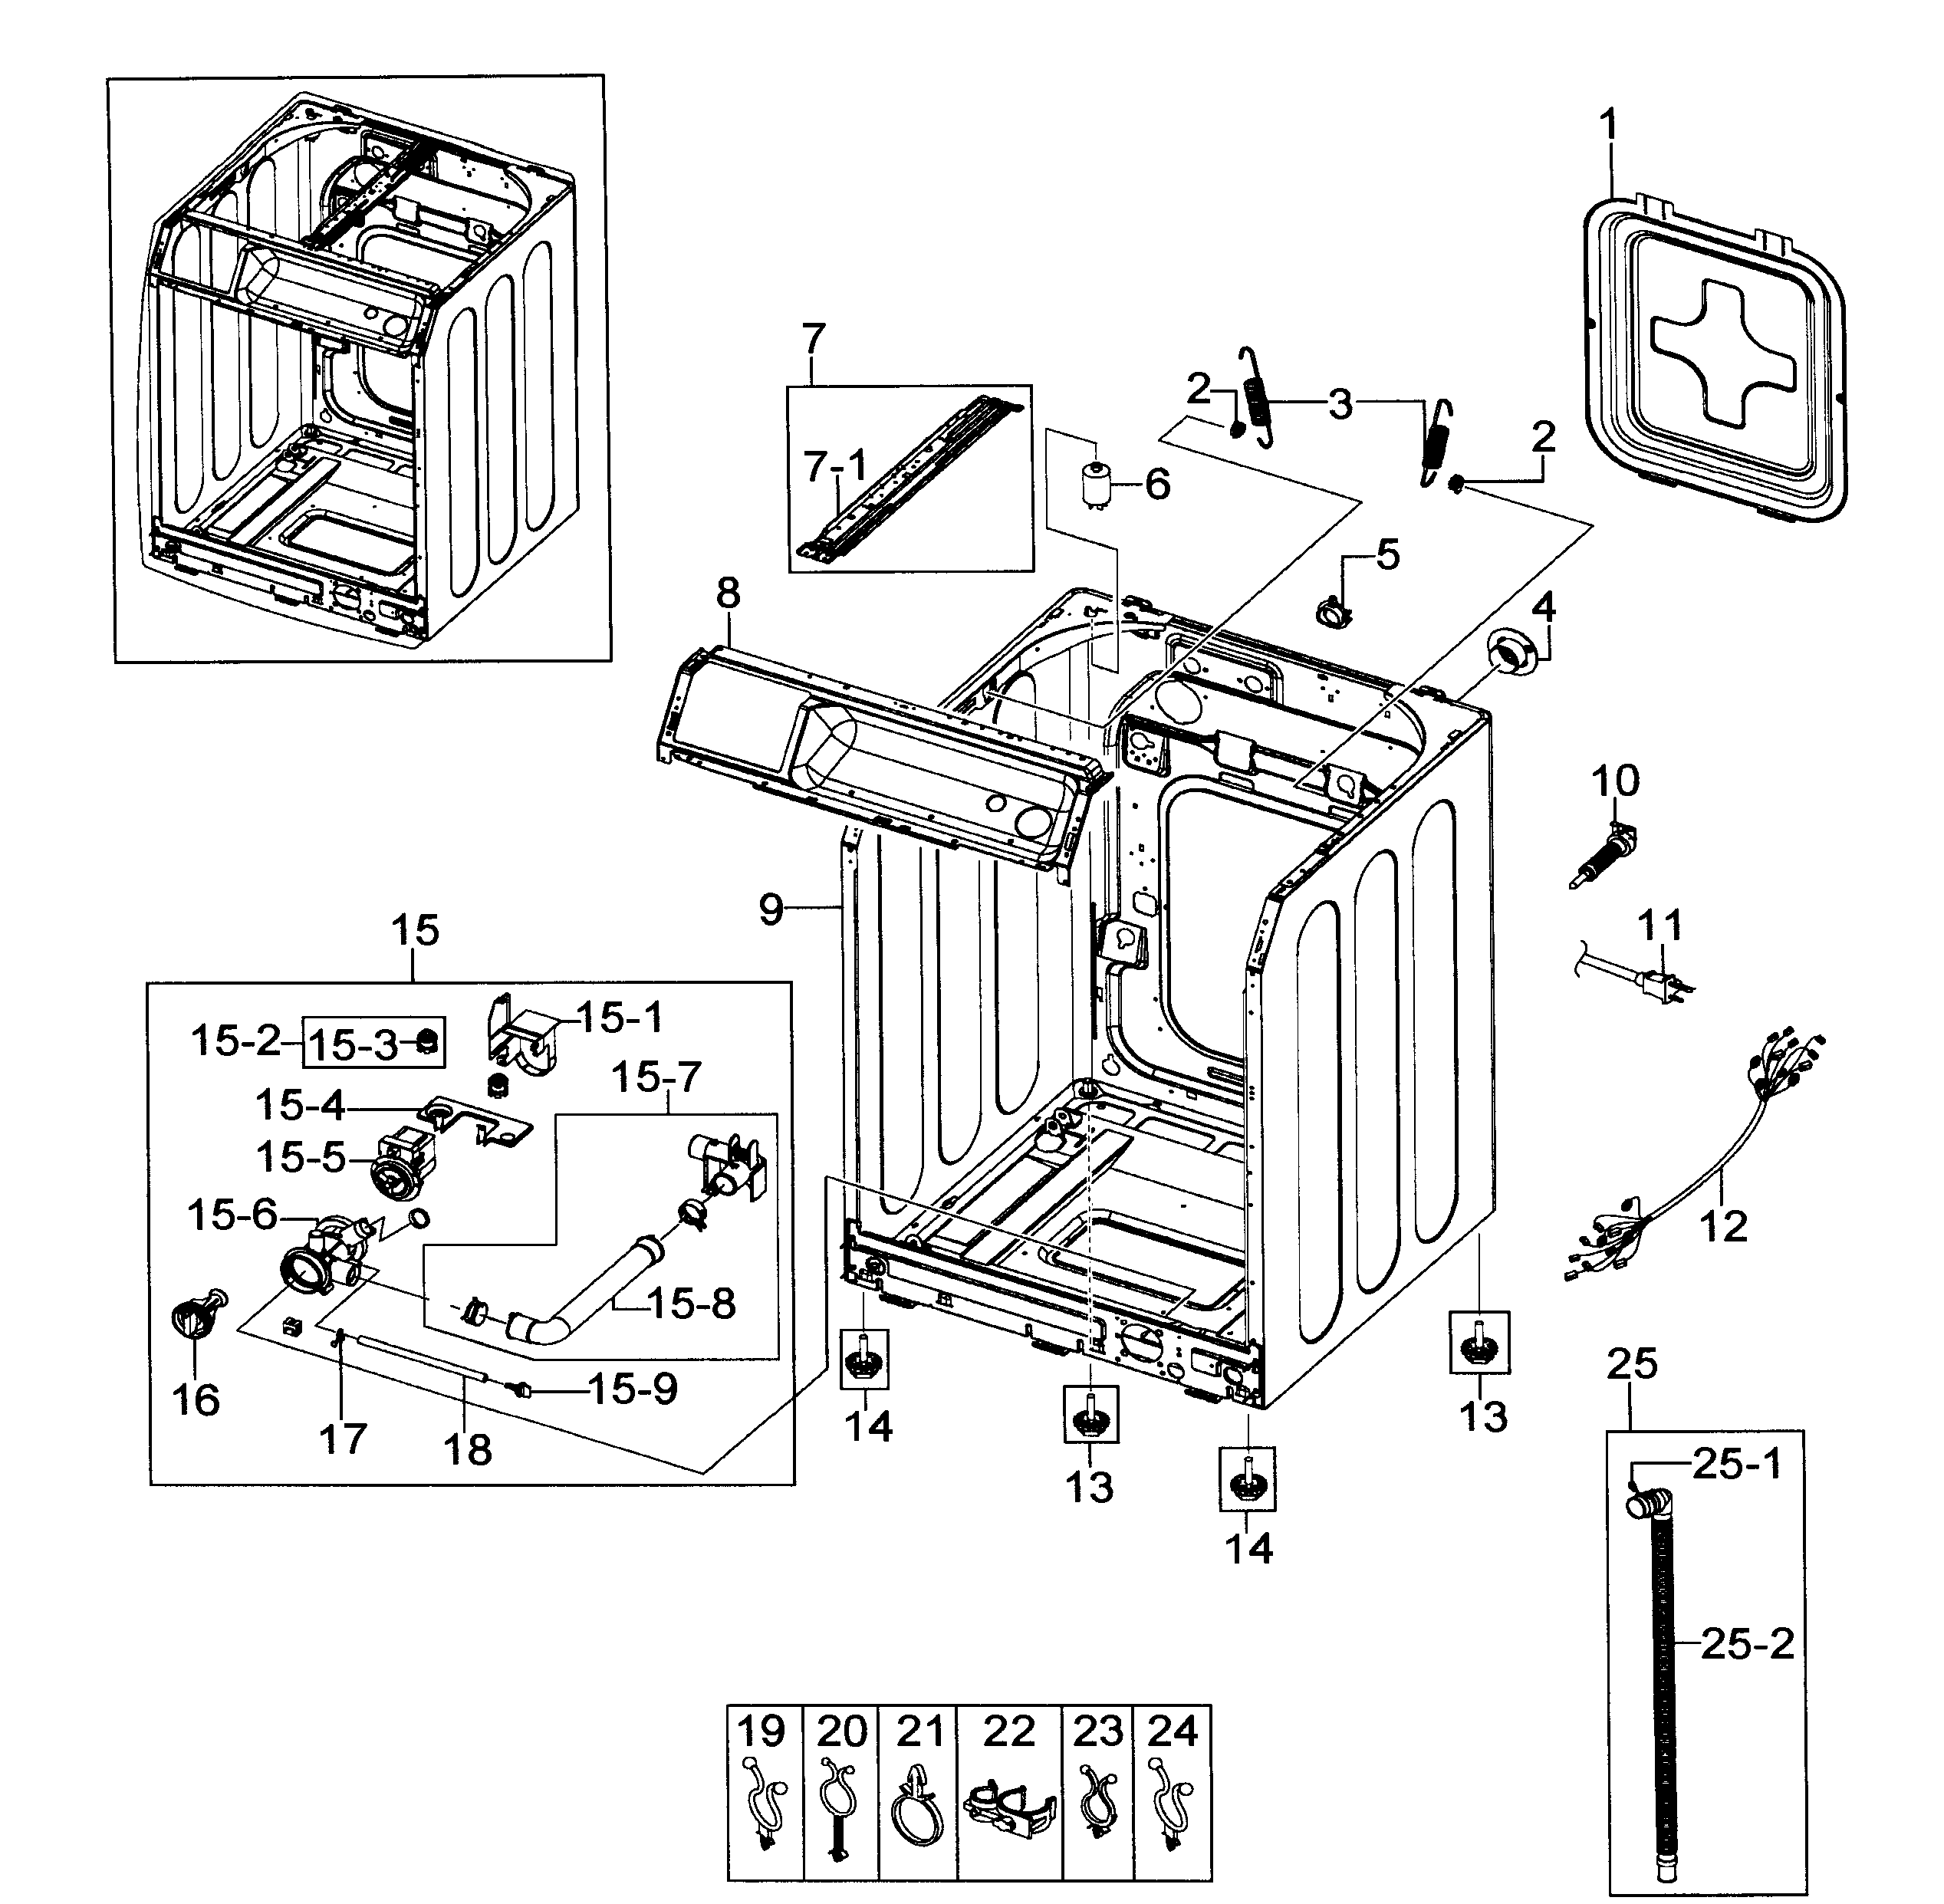 34 Samsung Front Load Washer Parts Diagram